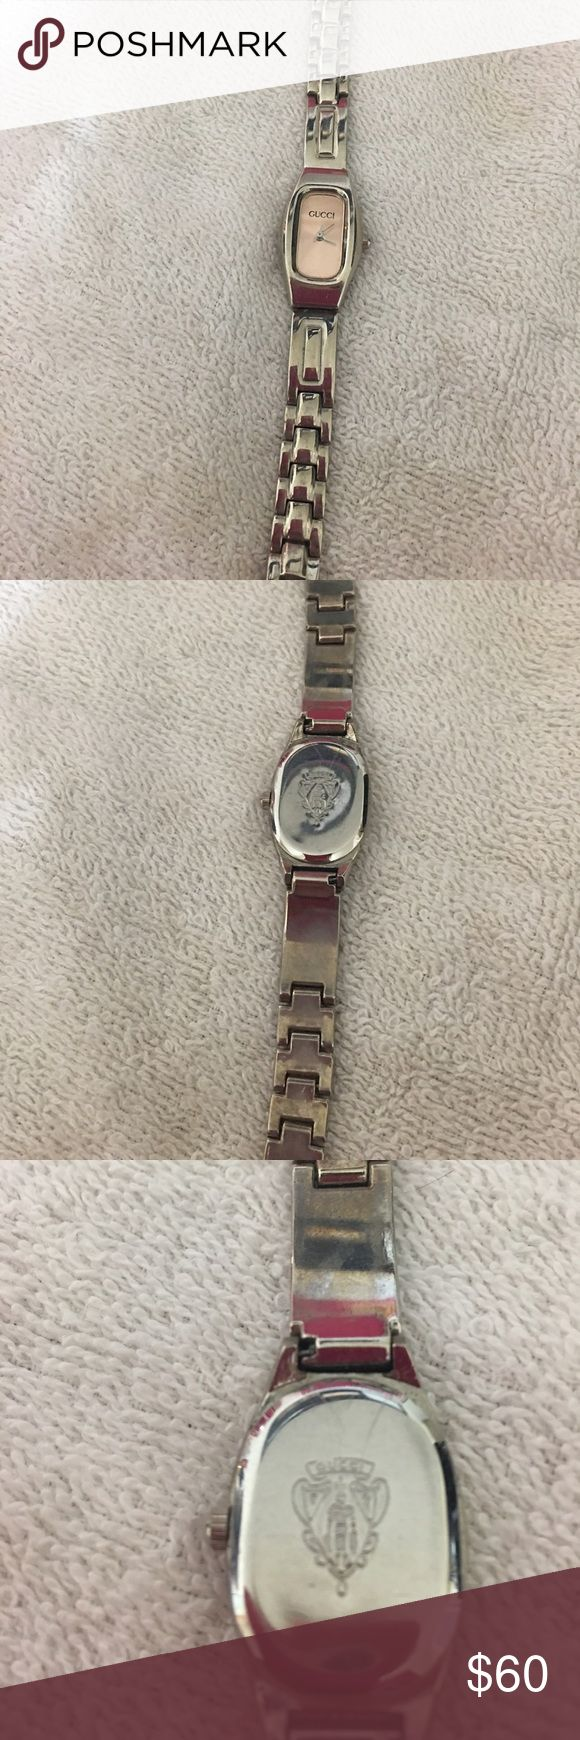 Vintage Gucci Watch Pink Face and Aluminum body Vintage Gucci watch with crest on back. Watch is pretty worn and decently old. Authenticity can't be verified due to it being an older piece price reflects that as well. Also needs new battery. Gucci Accessories Watches